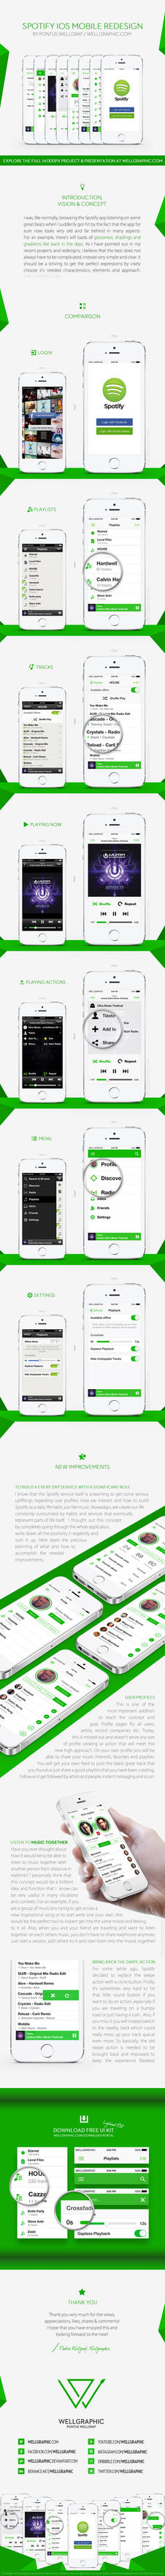 Spotify iOS Mobile Redesign by Wellgraphic by wellgraphic